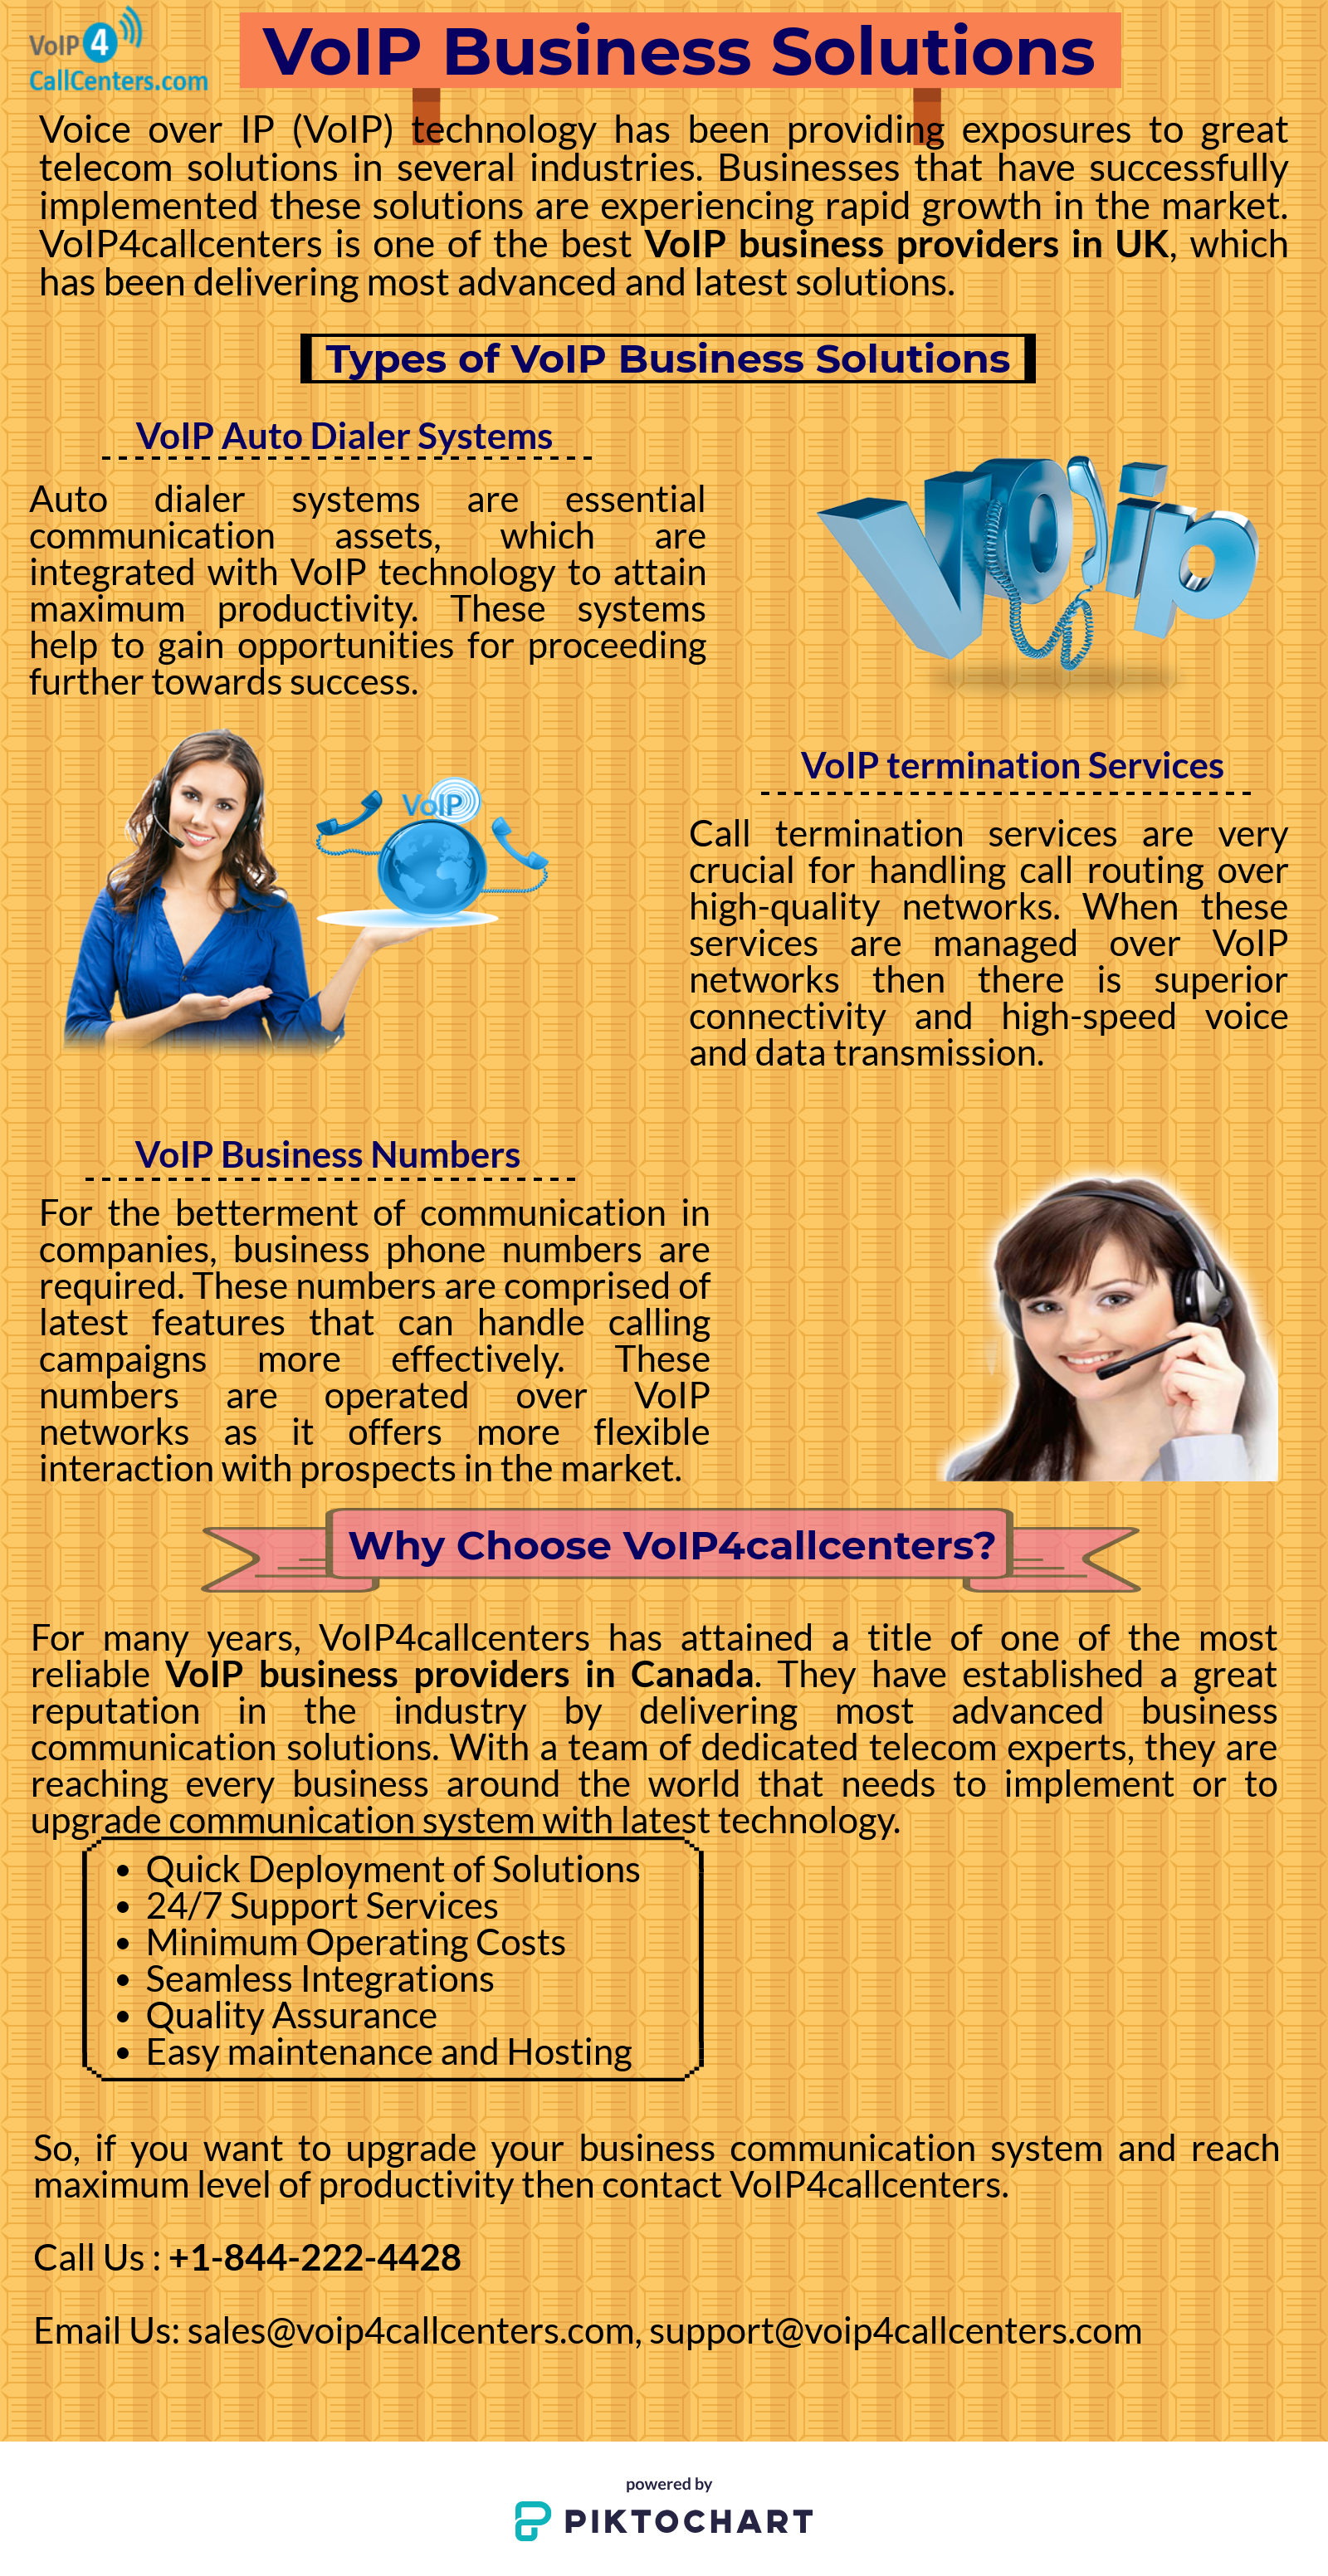 Voip4callcenters is provide Toll-Free Numbers and VOIP Business